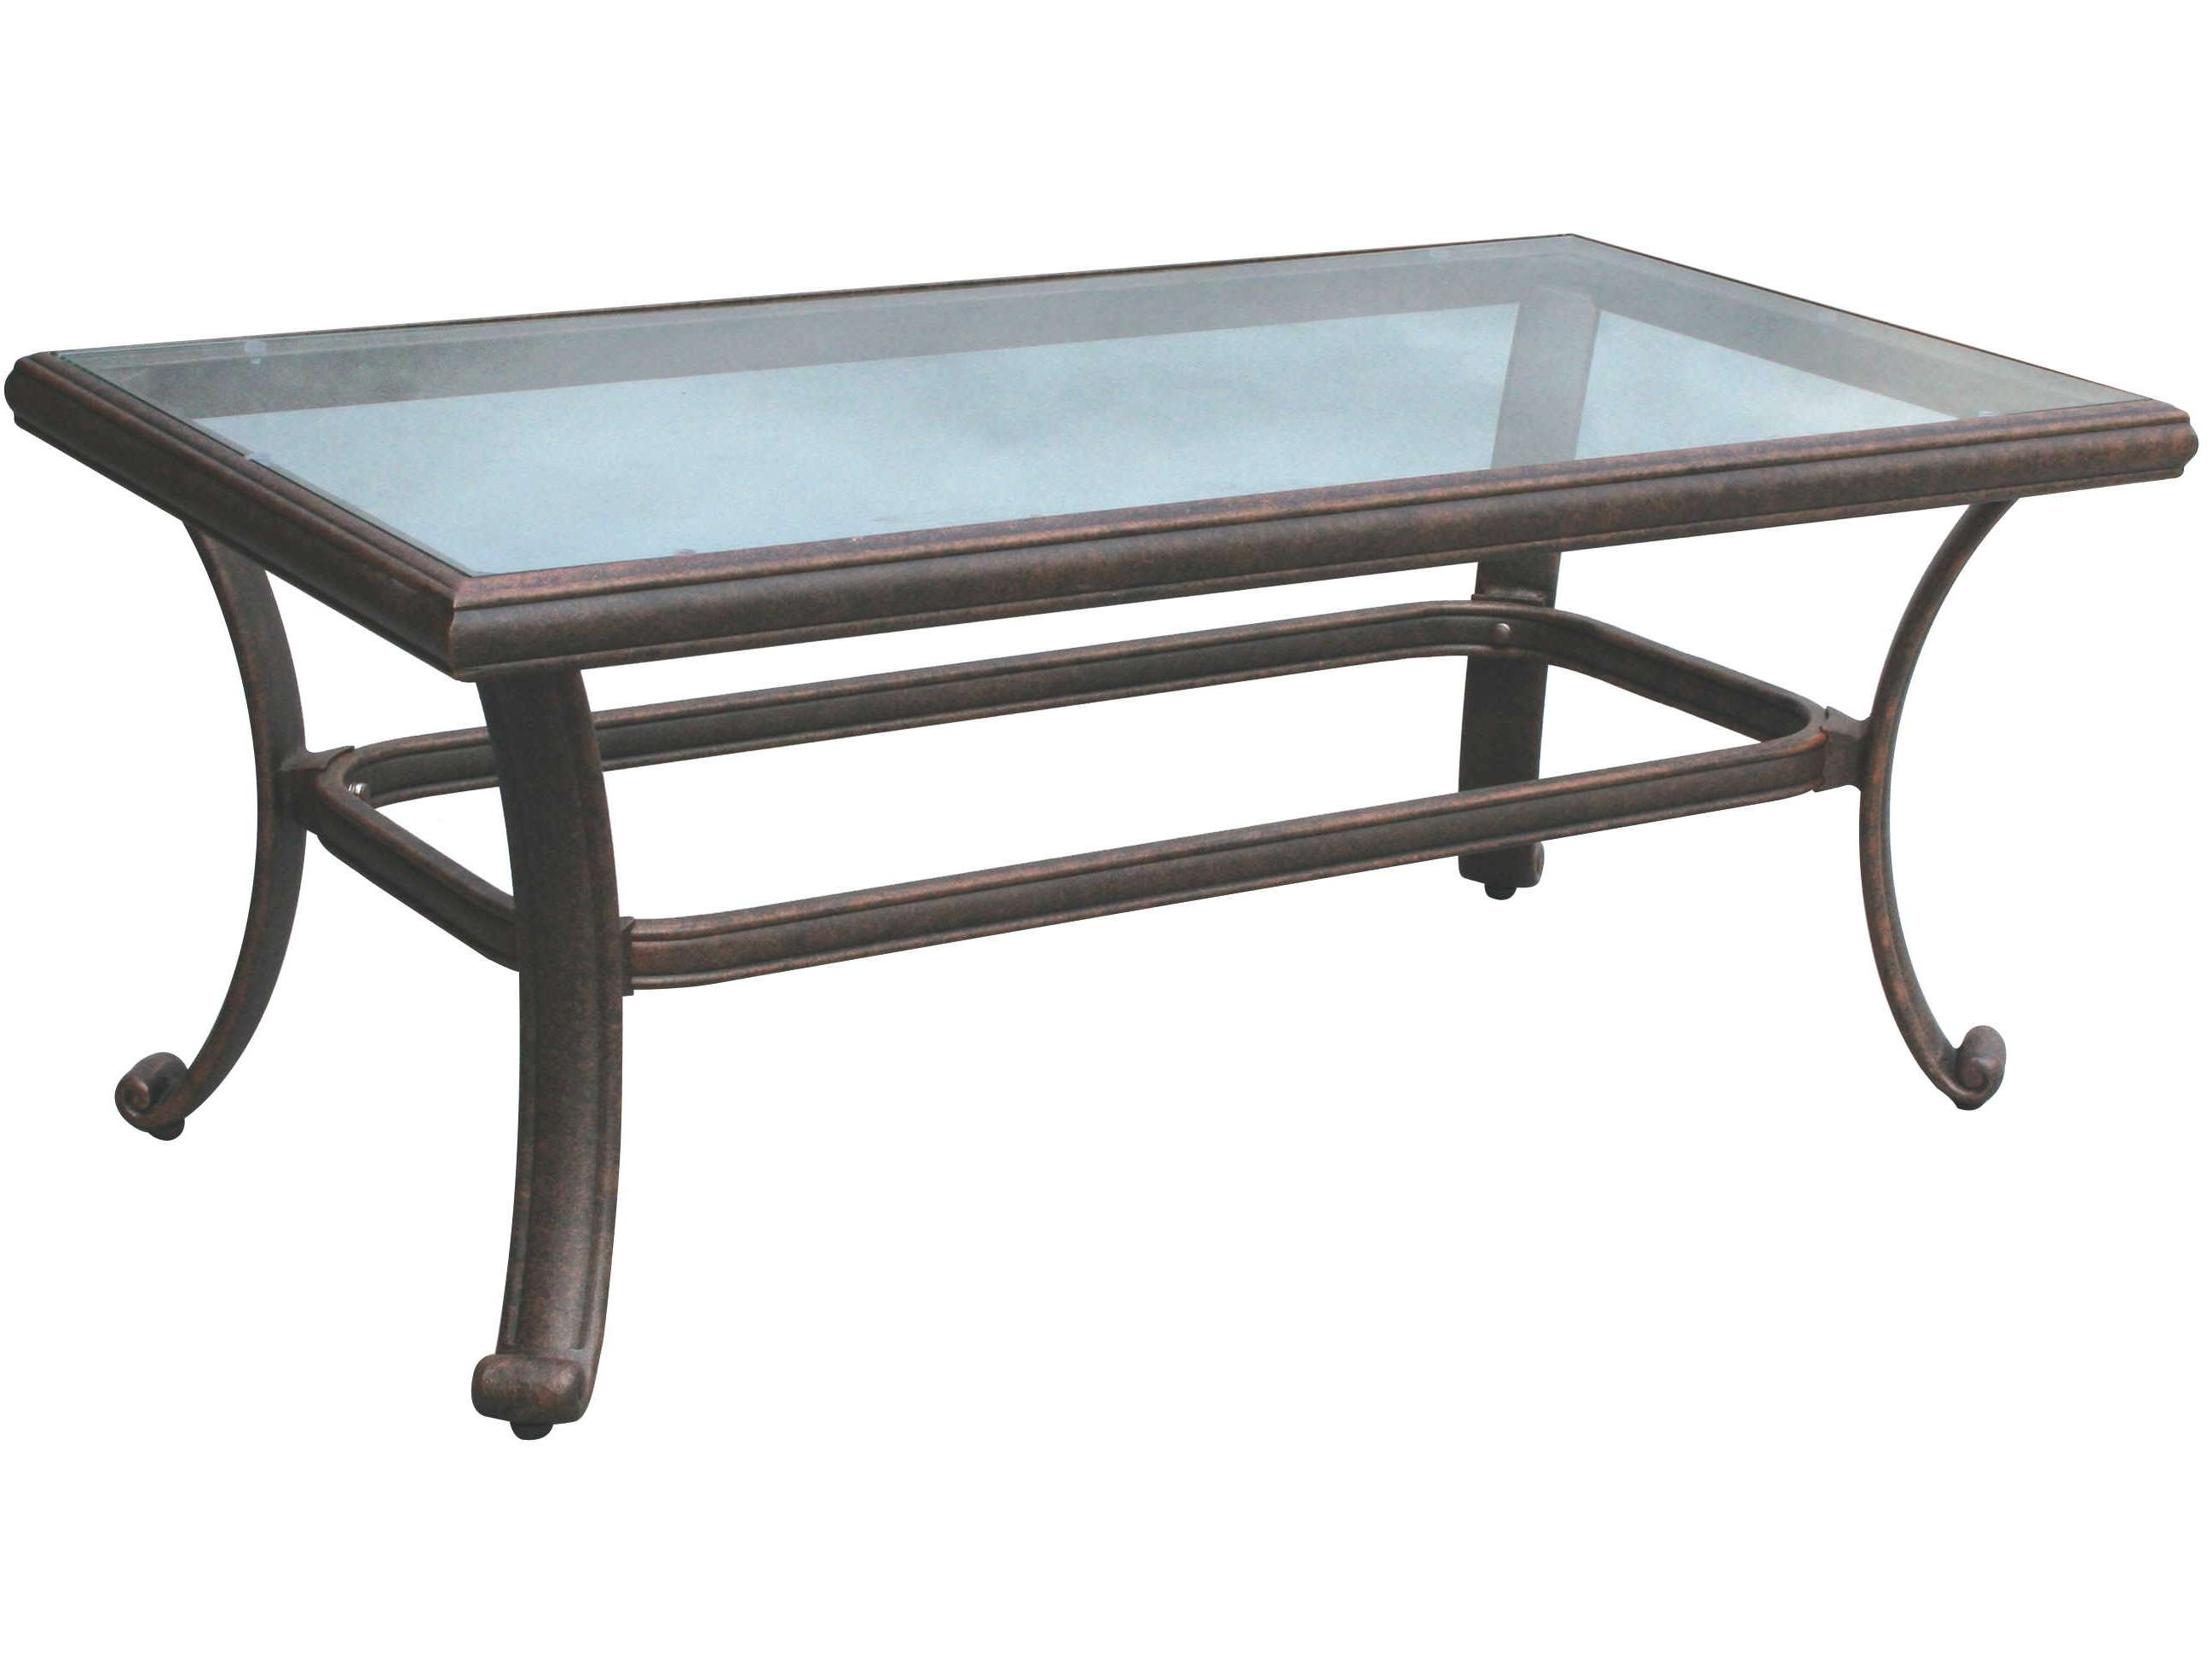 2018 Antique Glass Top Coffee Tables Regarding Outdoor Glass Coffee Table 4Mrh – Cnxconsortium (View 3 of 20)